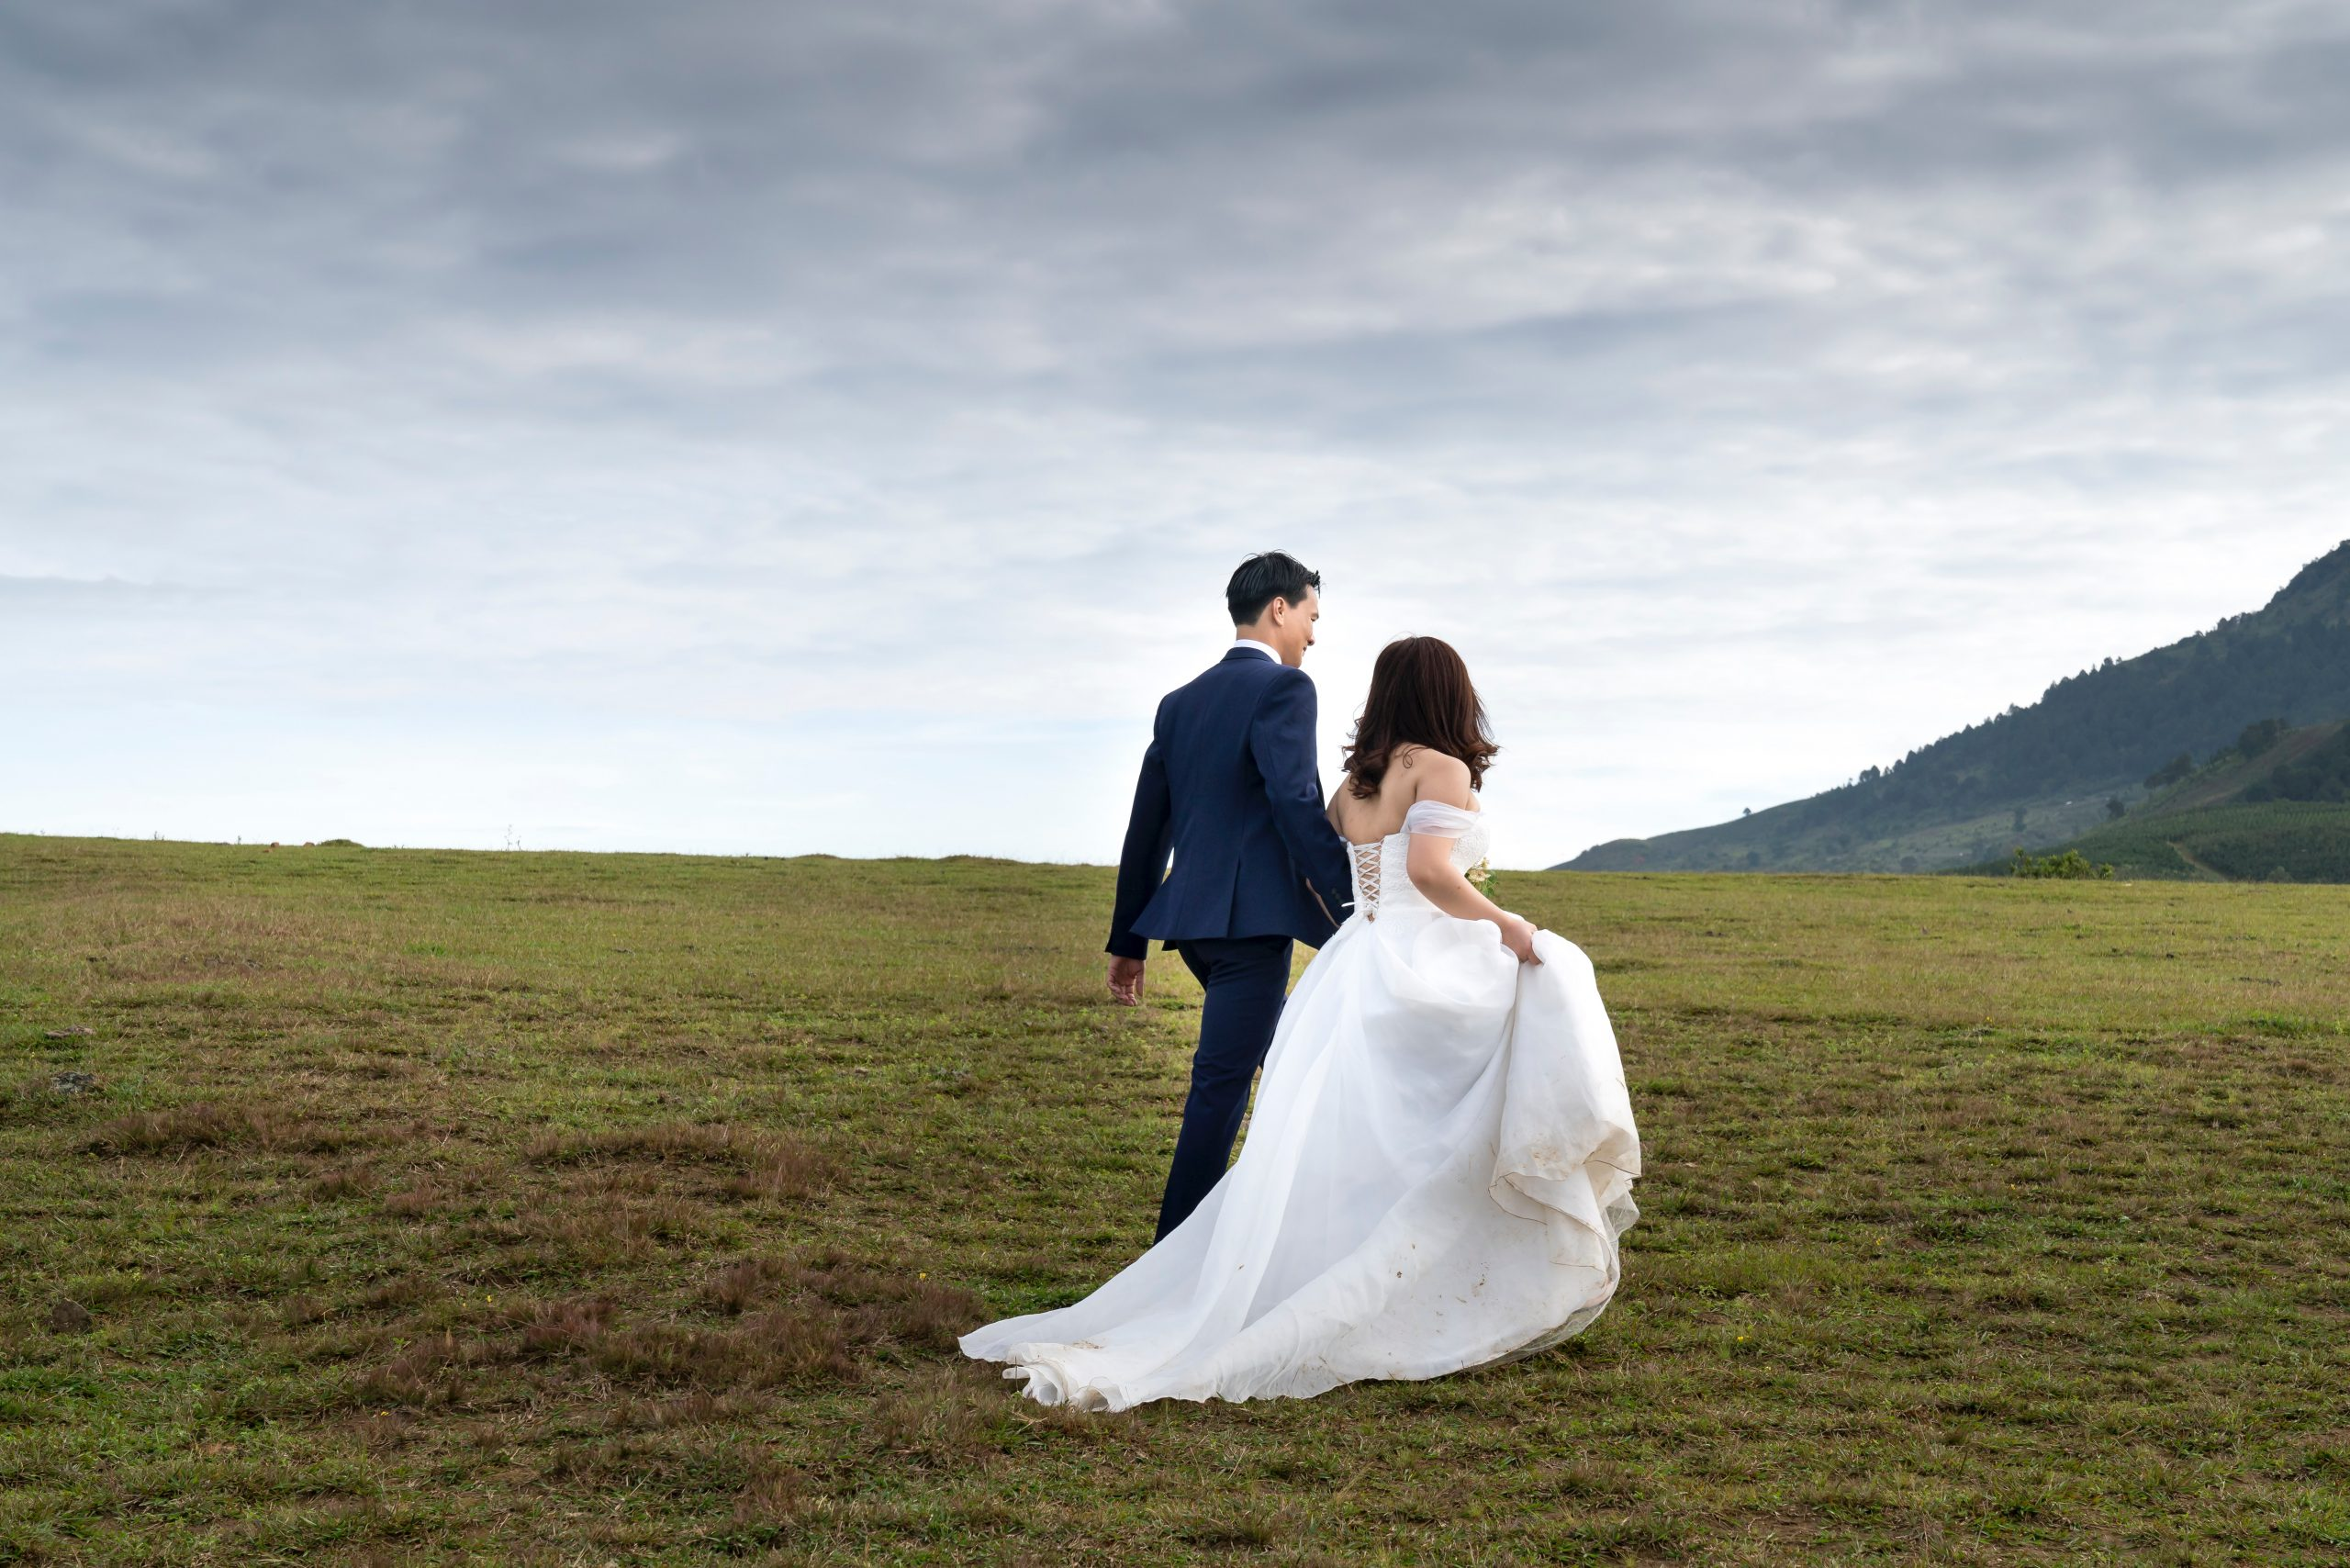 interracial-couple-bride-groom-walking-in-their-wedding-outfits